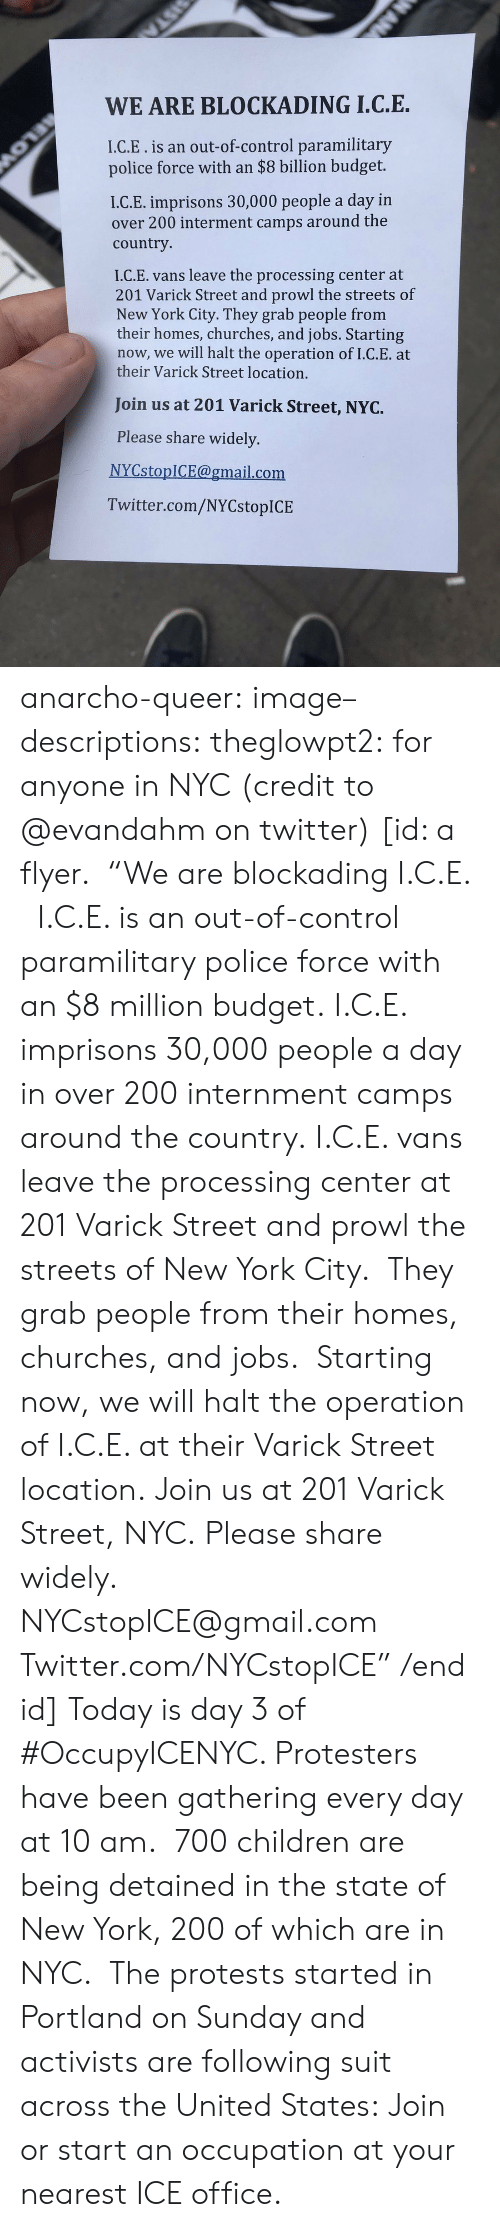 "The State: WE ARE BLOCKADING I.C.E.  I.C.E.is an out-of-control paramilitary  police force with an $8 billion budget.  I.C.E. imprisons 30,000 people a day in  over 200 interment camps around the  country  I.C.E. vans leave the processing center at  201 Varick Street and prowl the streets of  New York City. They grab people from  their homes, churches, and jobs. Starting  now, we will halt the operation of I.C.E. at  their Varick Street location.  Join us at 201 Varick Street, NYC.  Please share widely.  NYCstopICE@gmail.com  Twitter.com/NYCstopICE anarcho-queer: image–descriptions:  theglowpt2: for anyone in NYC (credit to @evandahm on twitter) [id: a flyer.  ""We are blockading I.C.E.   I.C.E. is an out-of-control paramilitary police force with an $8 million budget. I.C.E. imprisons 30,000 people a day in over 200 internment camps around the country. I.C.E. vans leave the processing center at 201 Varick Street and prowl the streets of New York City.  They grab people from their homes, churches, and jobs.  Starting now, we will halt the operation of I.C.E. at their Varick Street location. Join us at 201 Varick Street, NYC. Please share widely. NYCstopICE@gmail.com Twitter.com/NYCstopICE"" /end id]  Today is day 3 of #OccupyICENYC. Protesters have been gathering every day at 10 am.  700 children are being detained in the state of New York, 200 of which are in NYC.  The protests started in Portland on Sunday and activists are following suit across the United States: Join or start an occupation at your nearest ICE office."